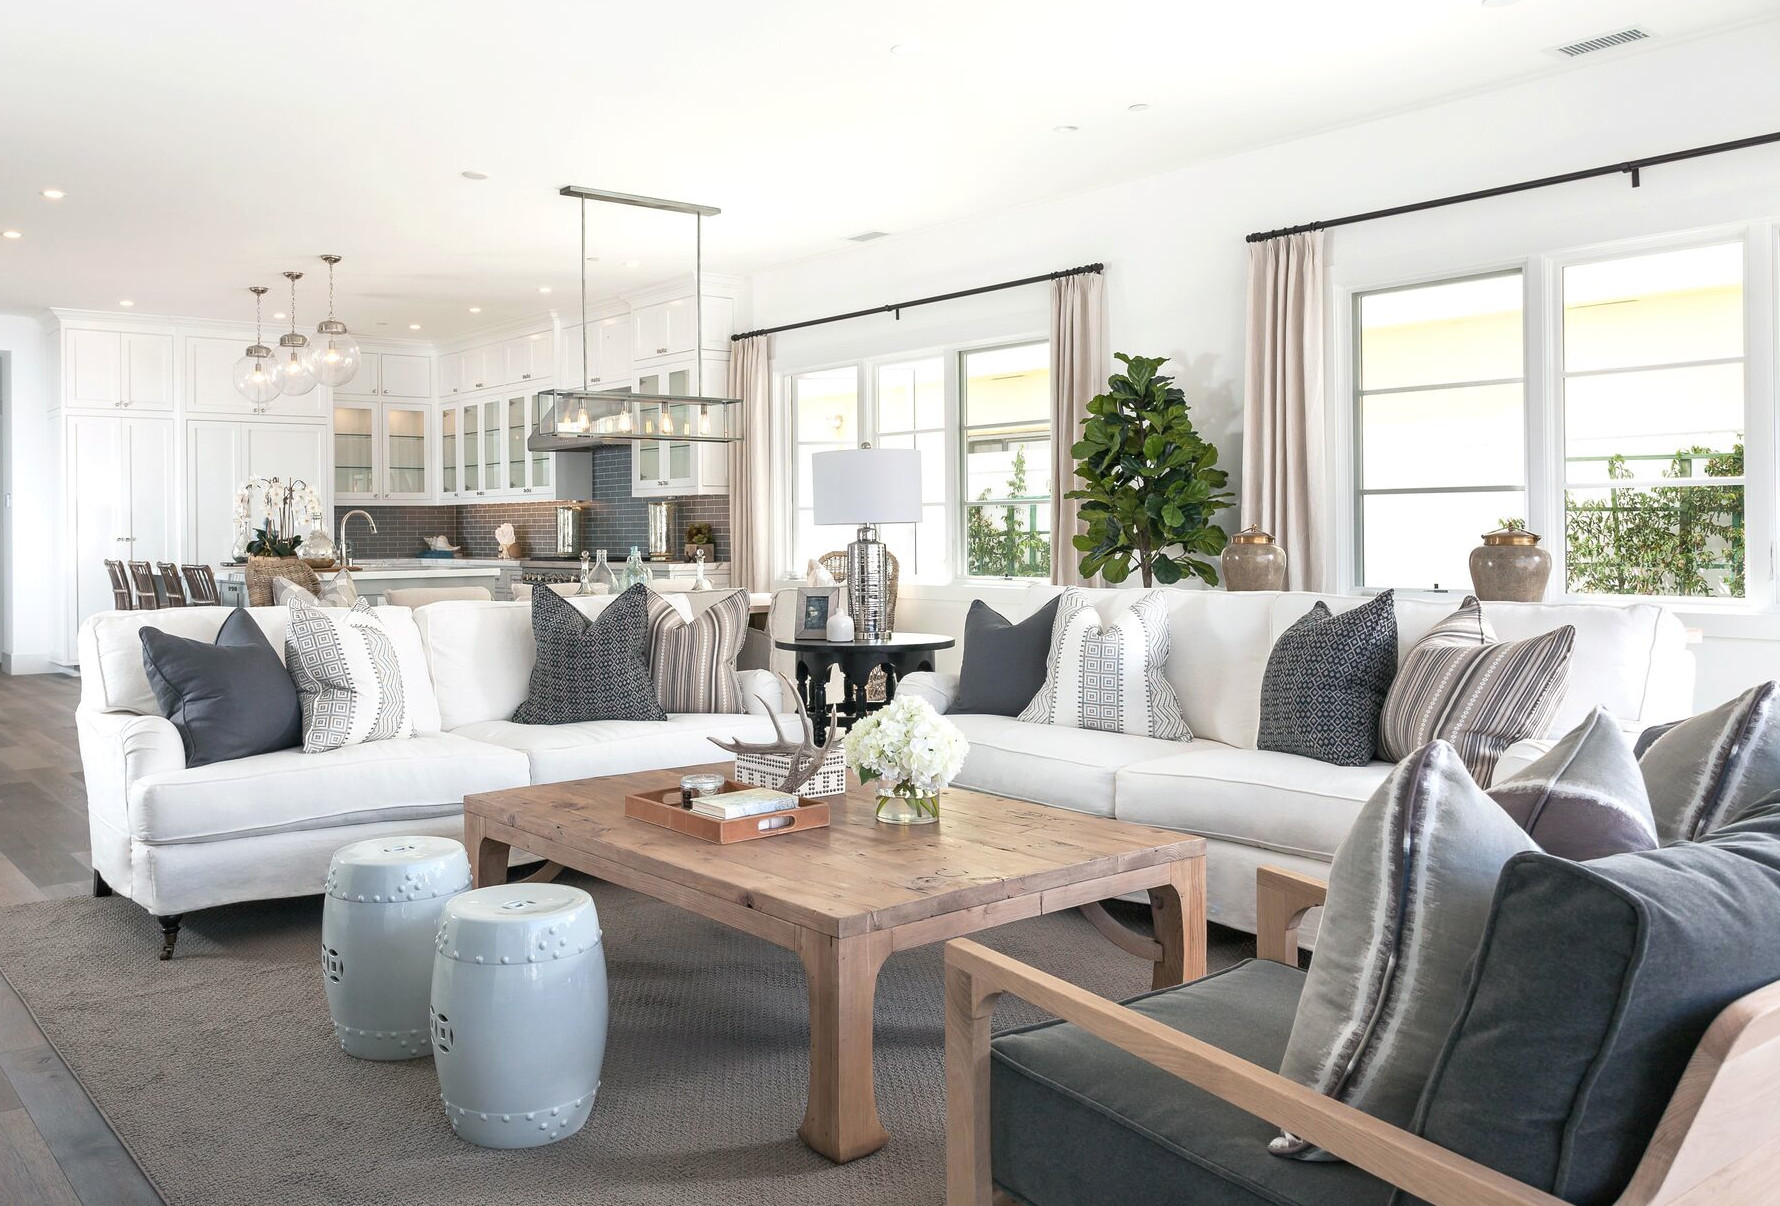 6 tips for decorating with coastal style year round for California contemporary interior design